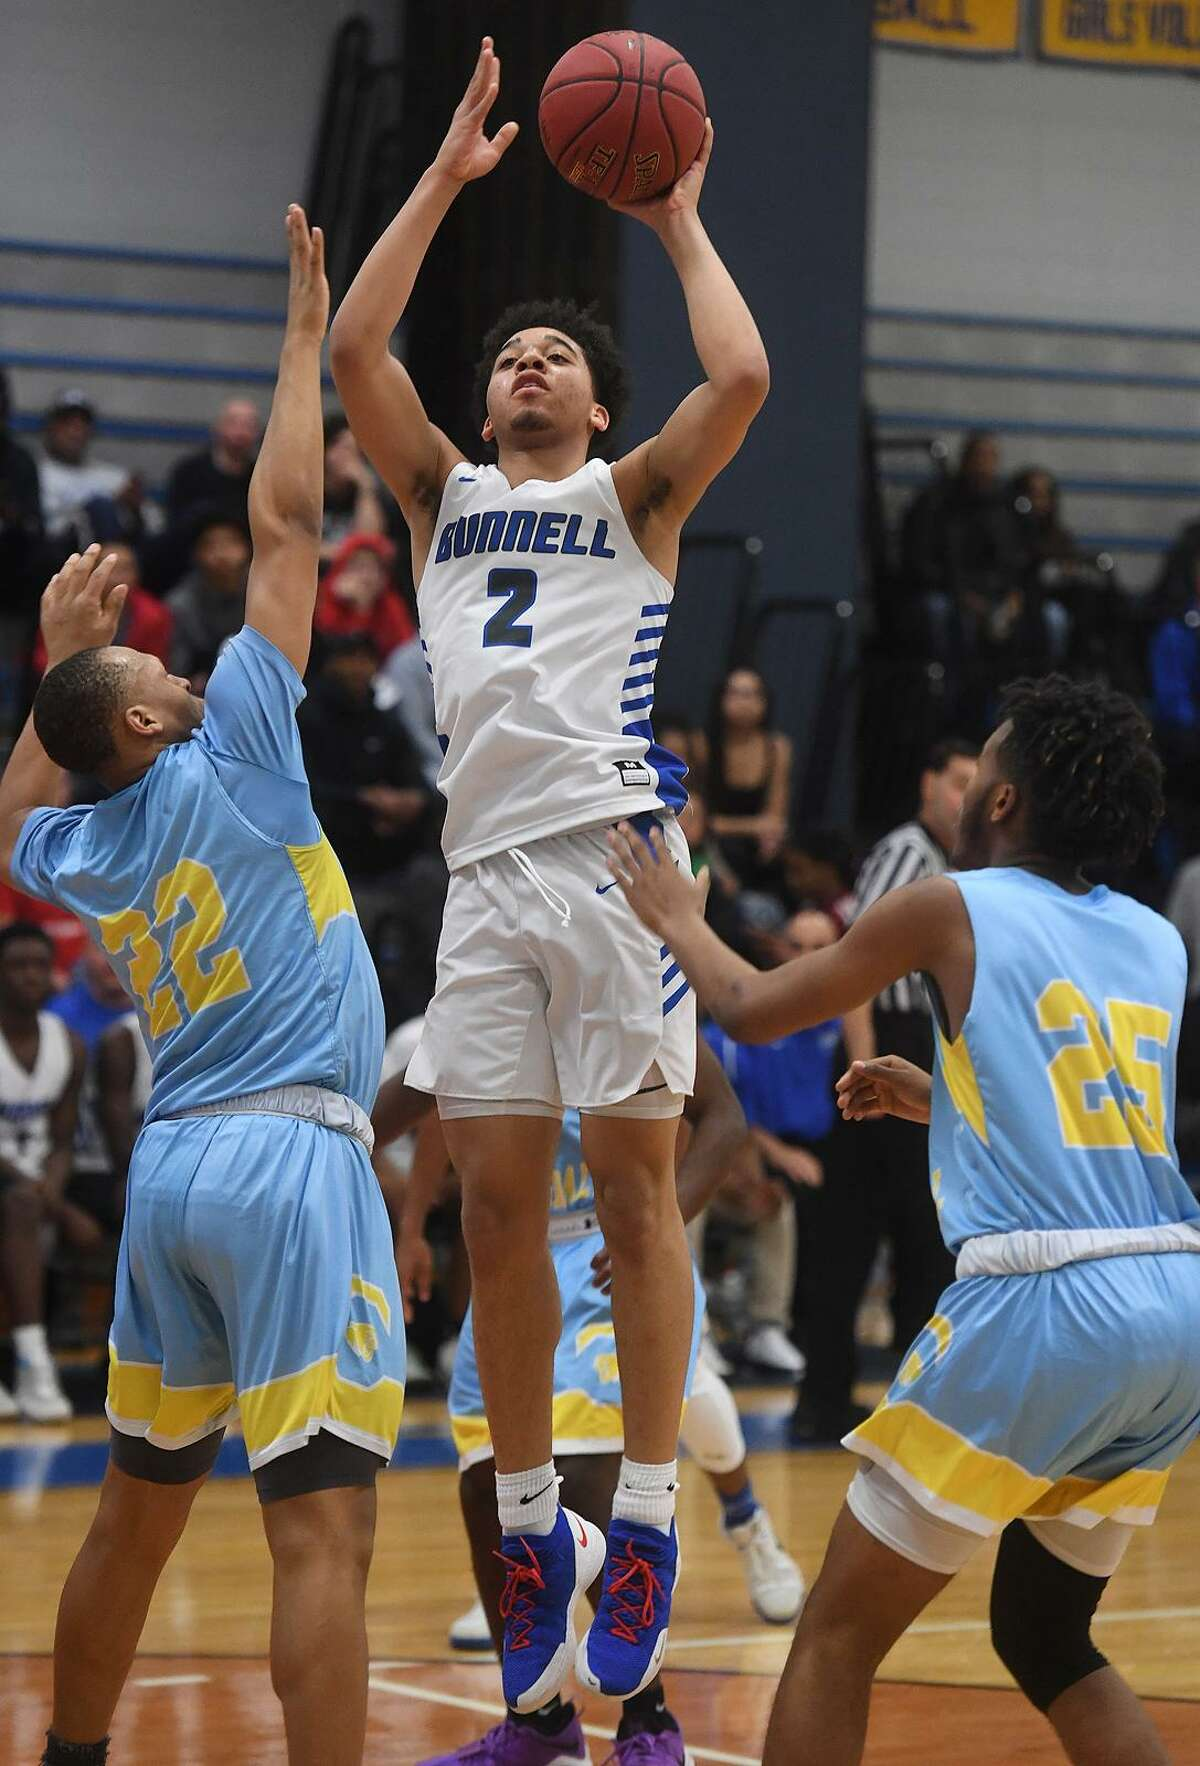 Bunnell's Max Edwards shoots over Kolbe Cathedral defenders Eudell Mason, left, and Jalen Sullivan during the Bulldogs' victory in the SWC boys basketball semifinals at Bunnell High School in Stratford on Monday night.